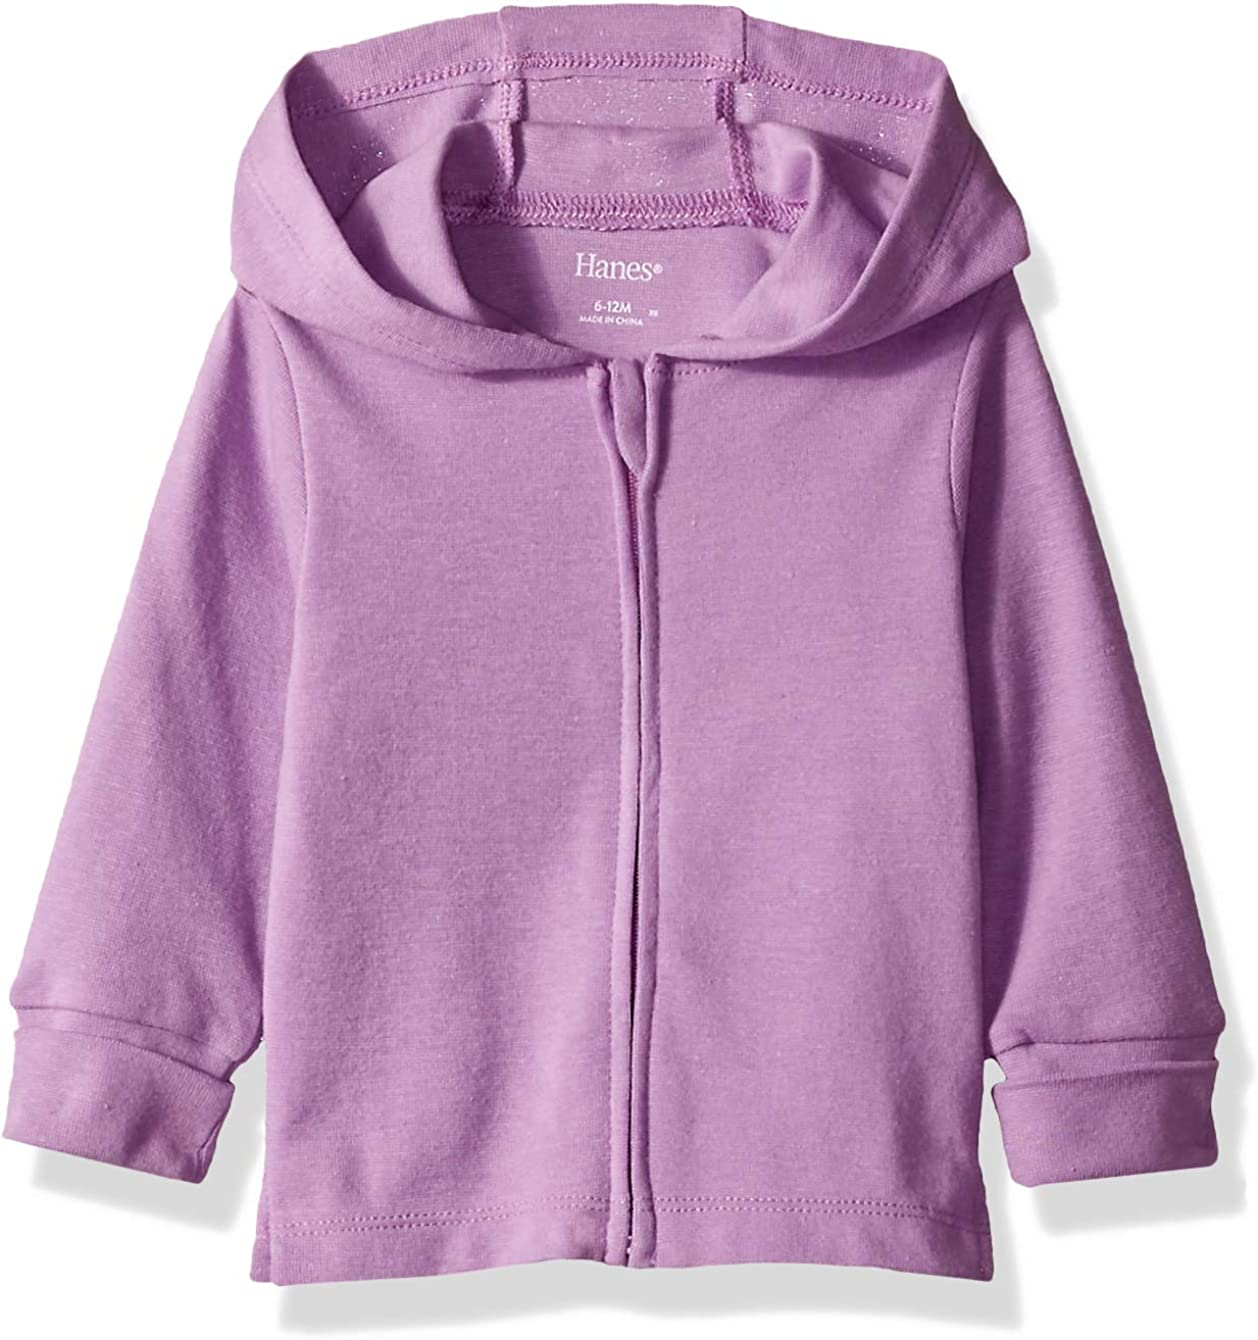 Hanes Girls' Ultimate Baby Zippin Knit Hoodie: Clothing